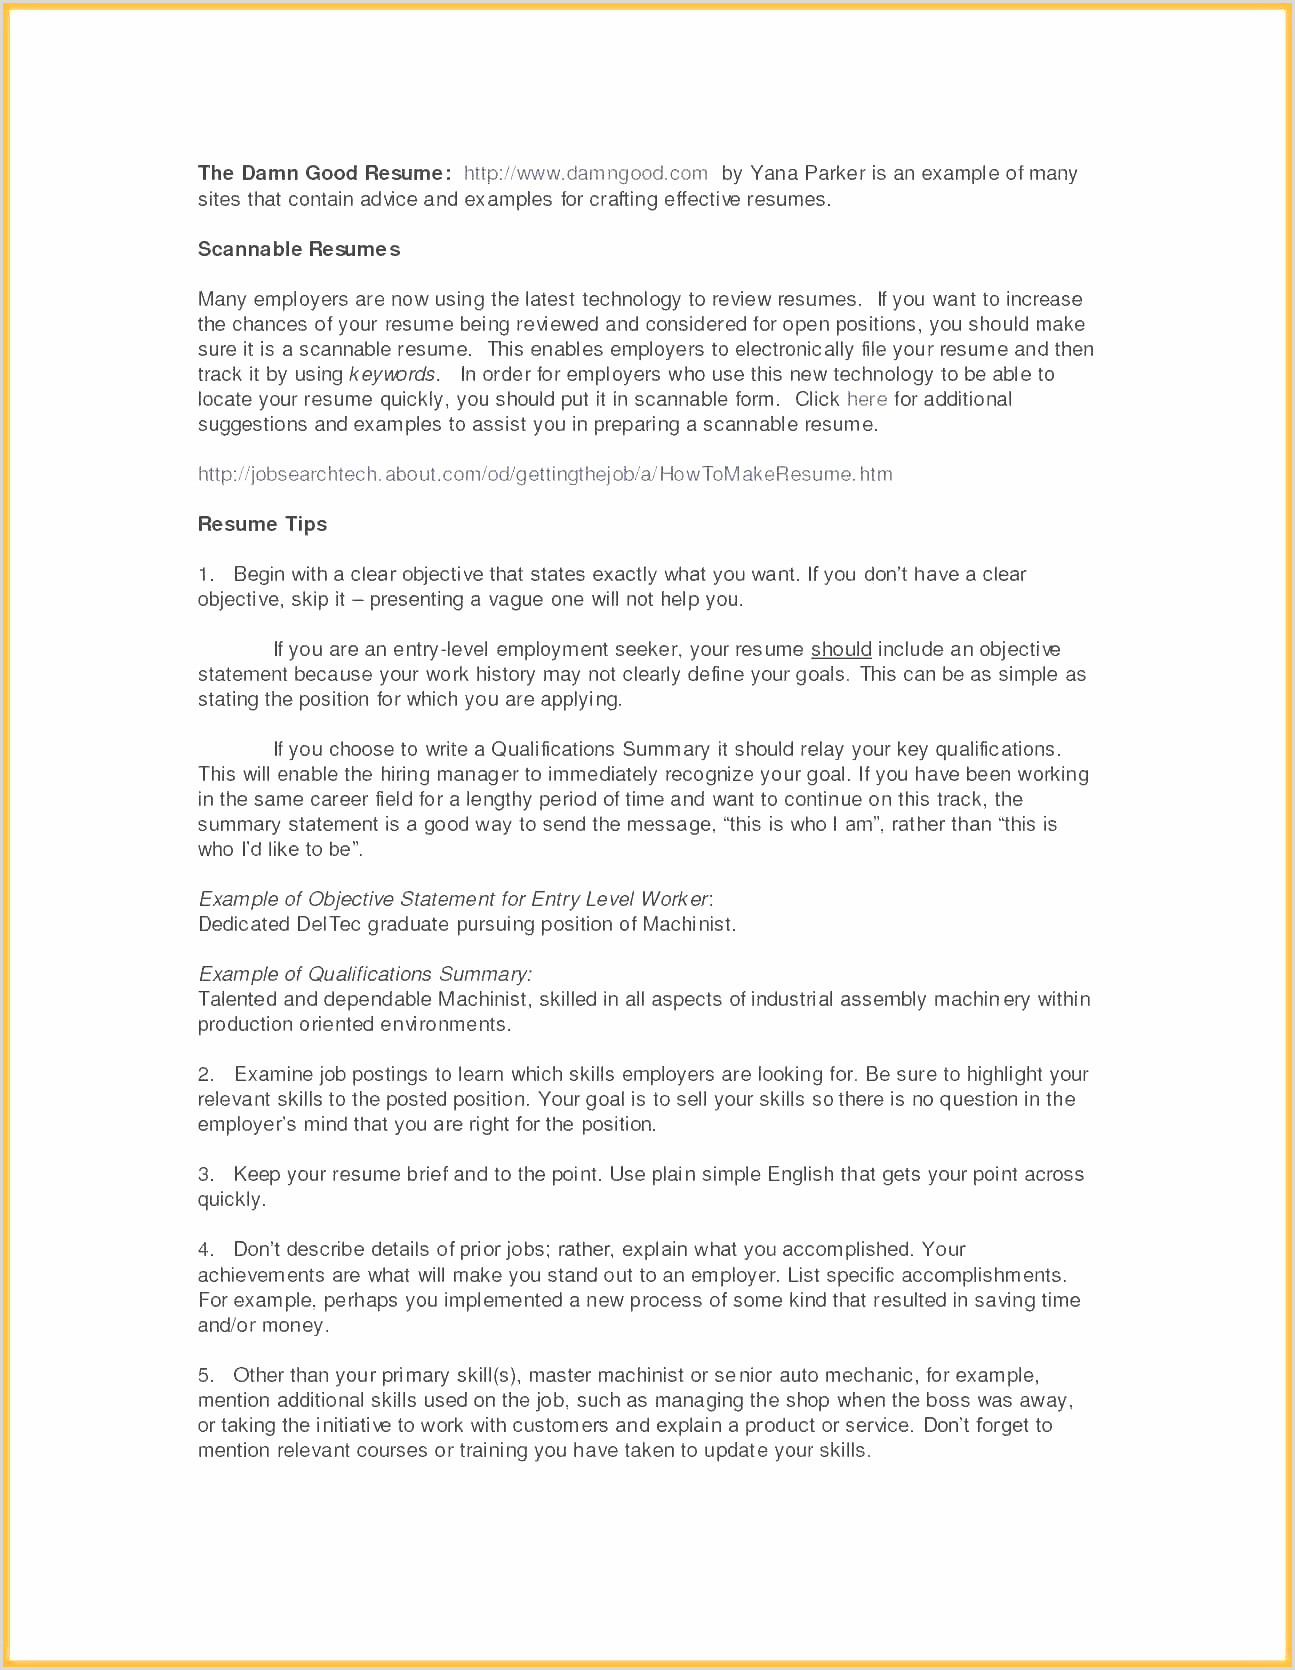 School Counseling Resume Templates 10 Resume Samples for Counseling Position